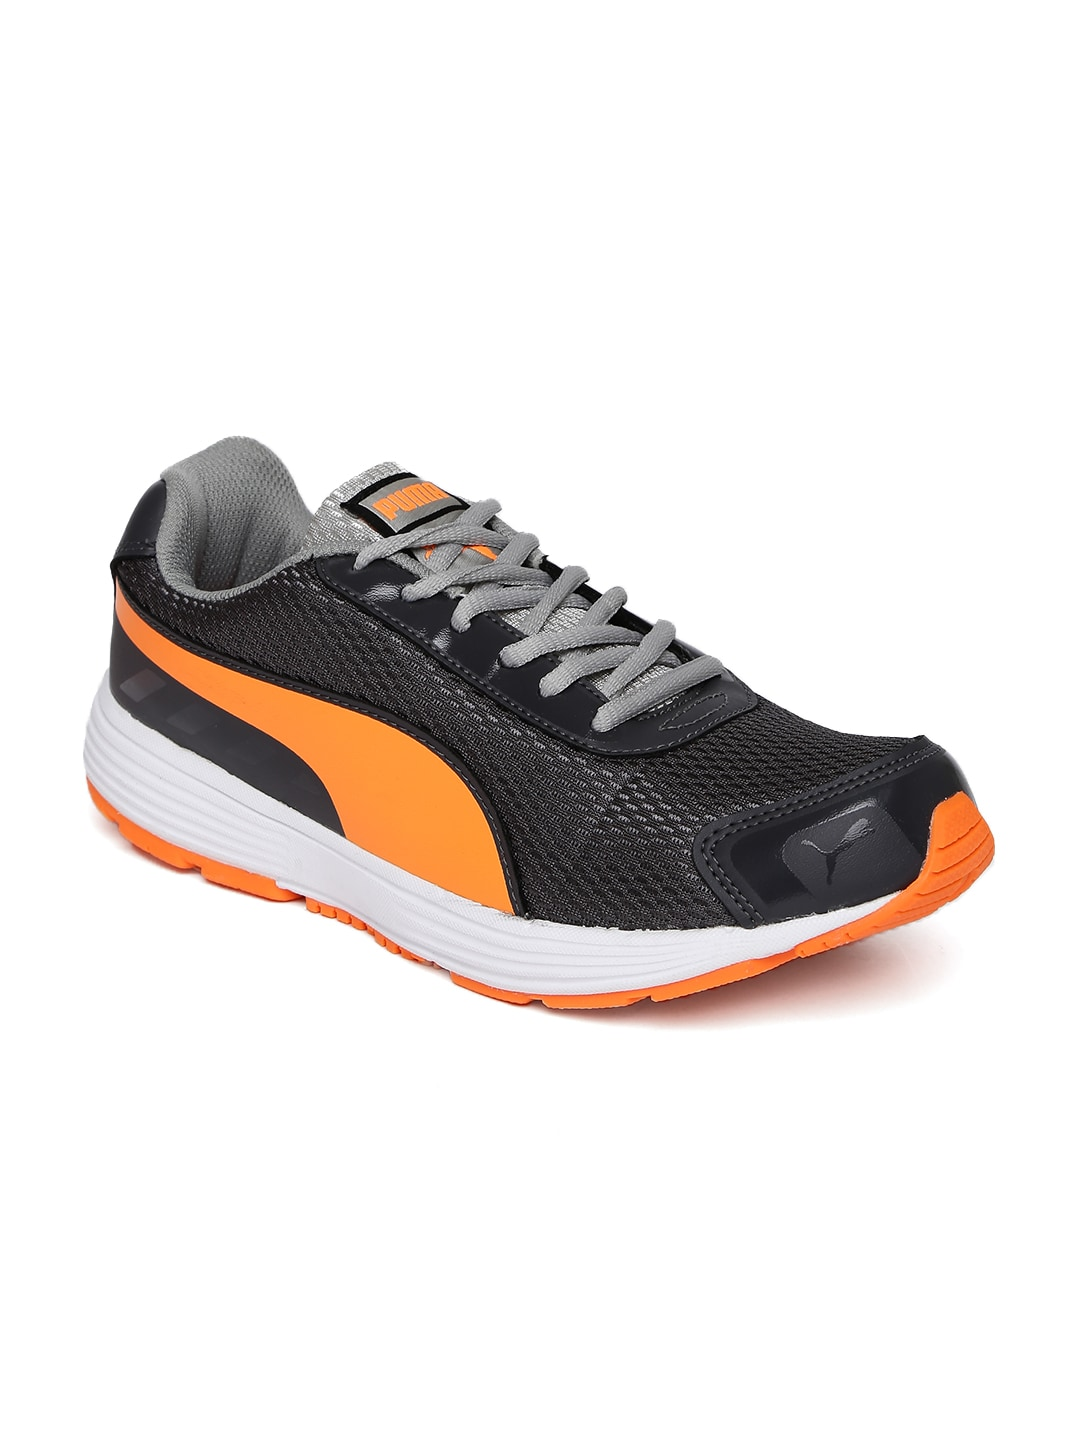 fdad6d060ee223 Men s Puma Shoes - Buy Puma Shoes for Men Online in India